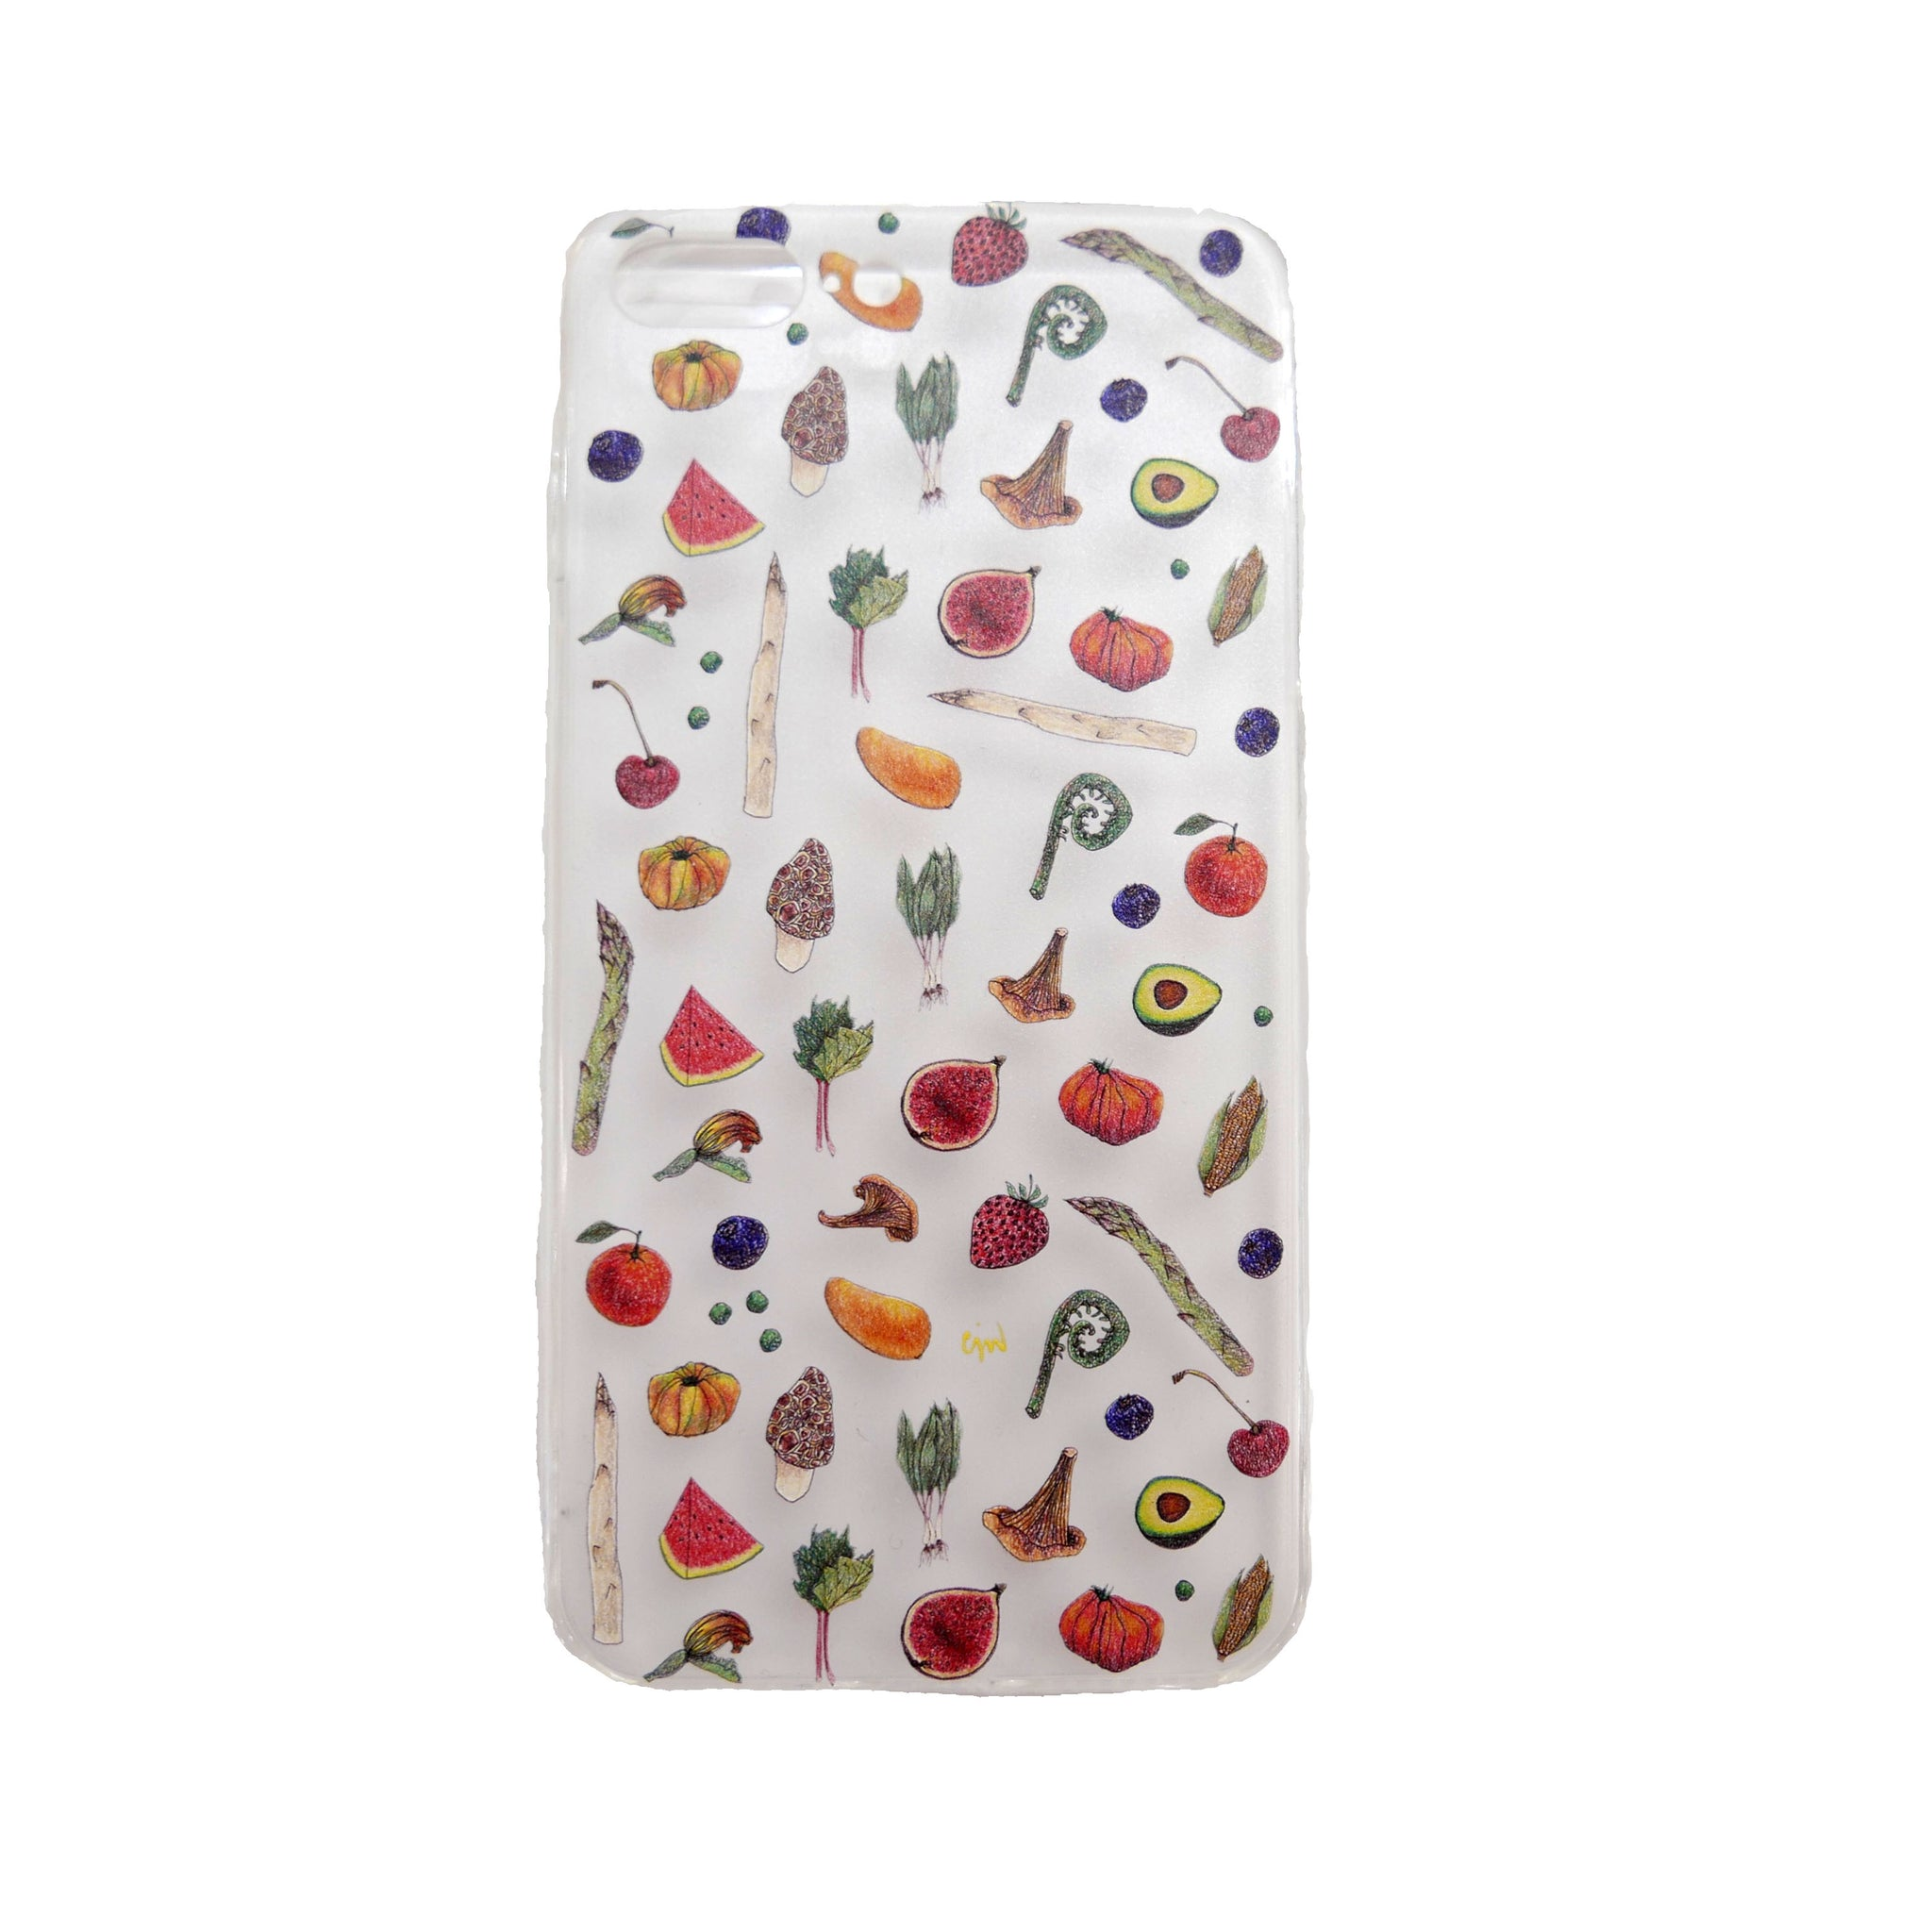 Fruit and Vege iPhone Case